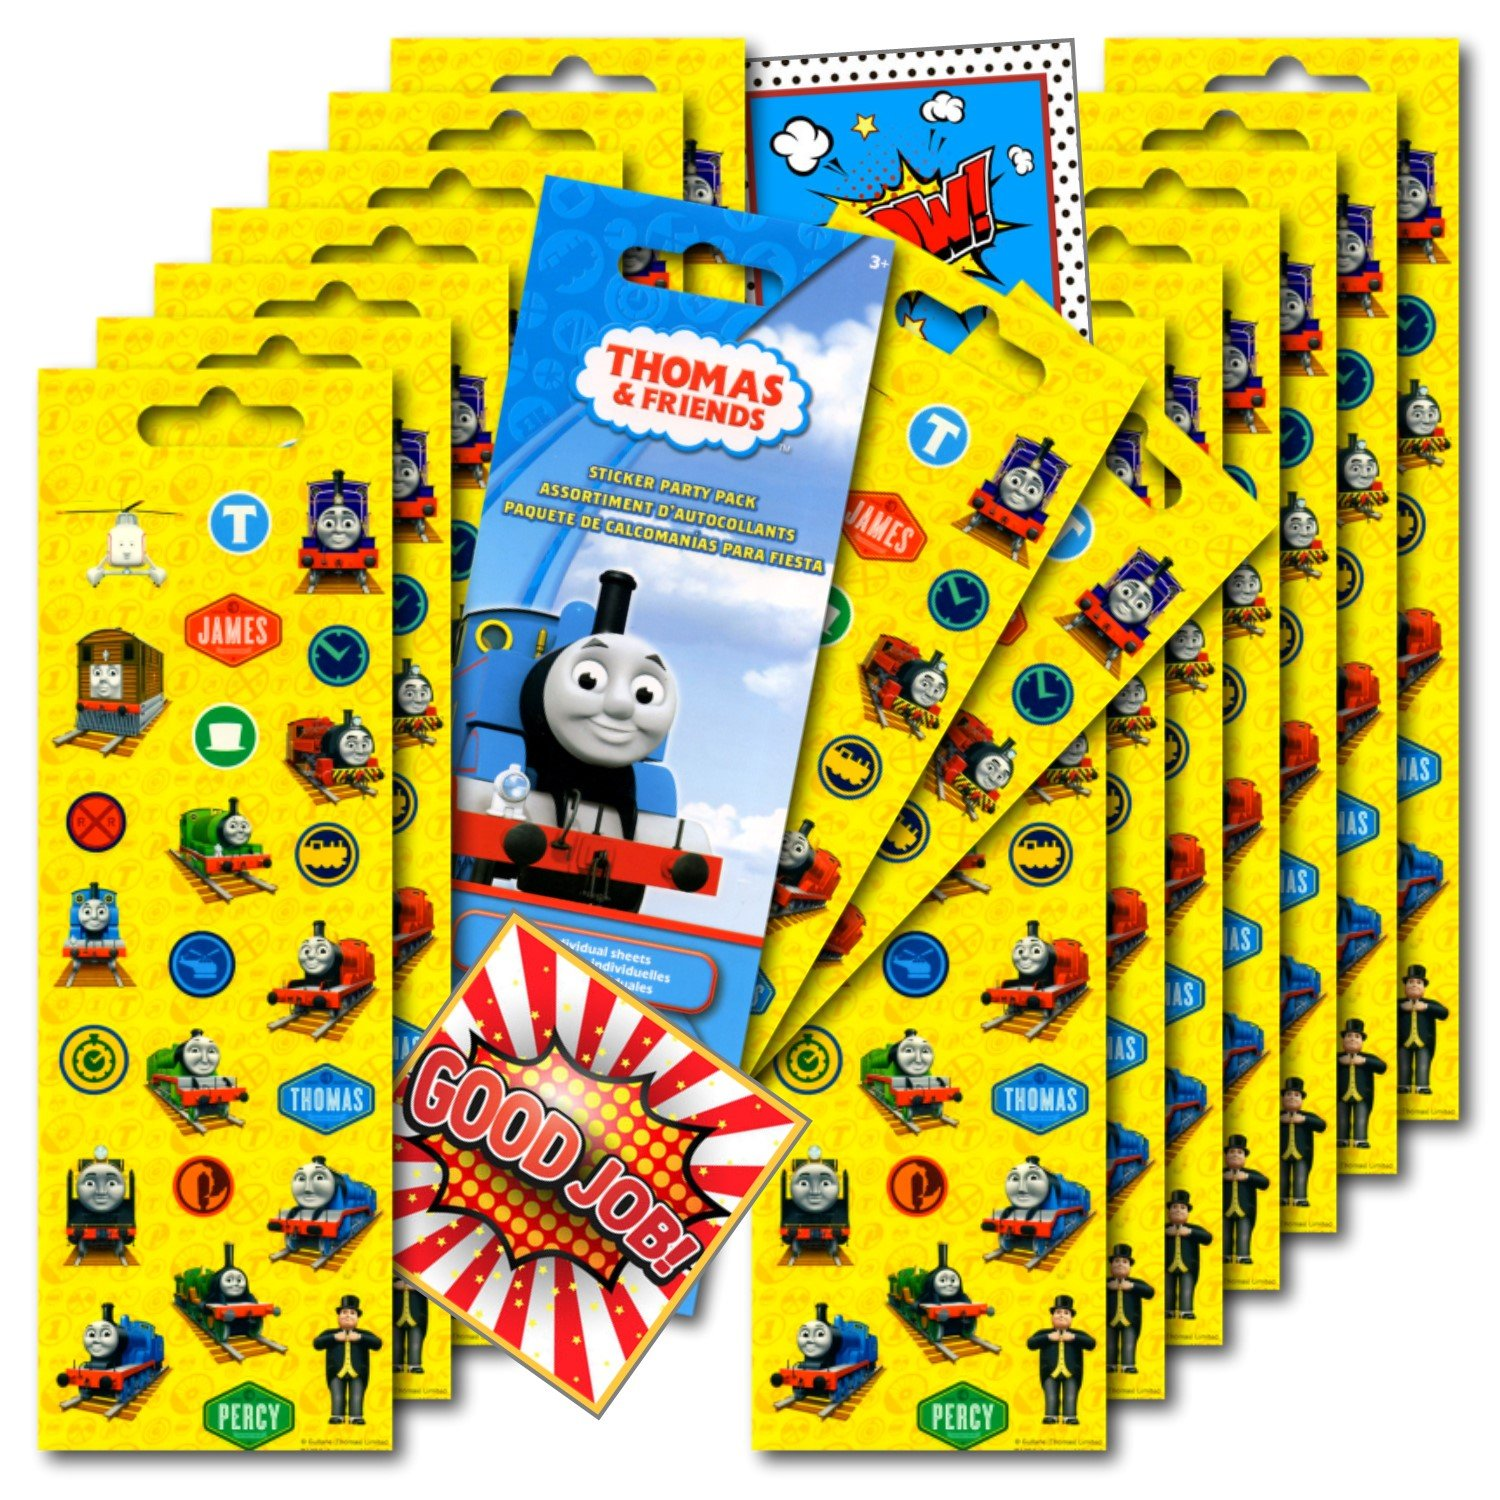 Thomas the Train Stickers Party Favors ~ Set of 2 Sticker Packs ~ 16 Sheets Over 380 Stickers plus Bonus Reward Stickers by Thomas Friends